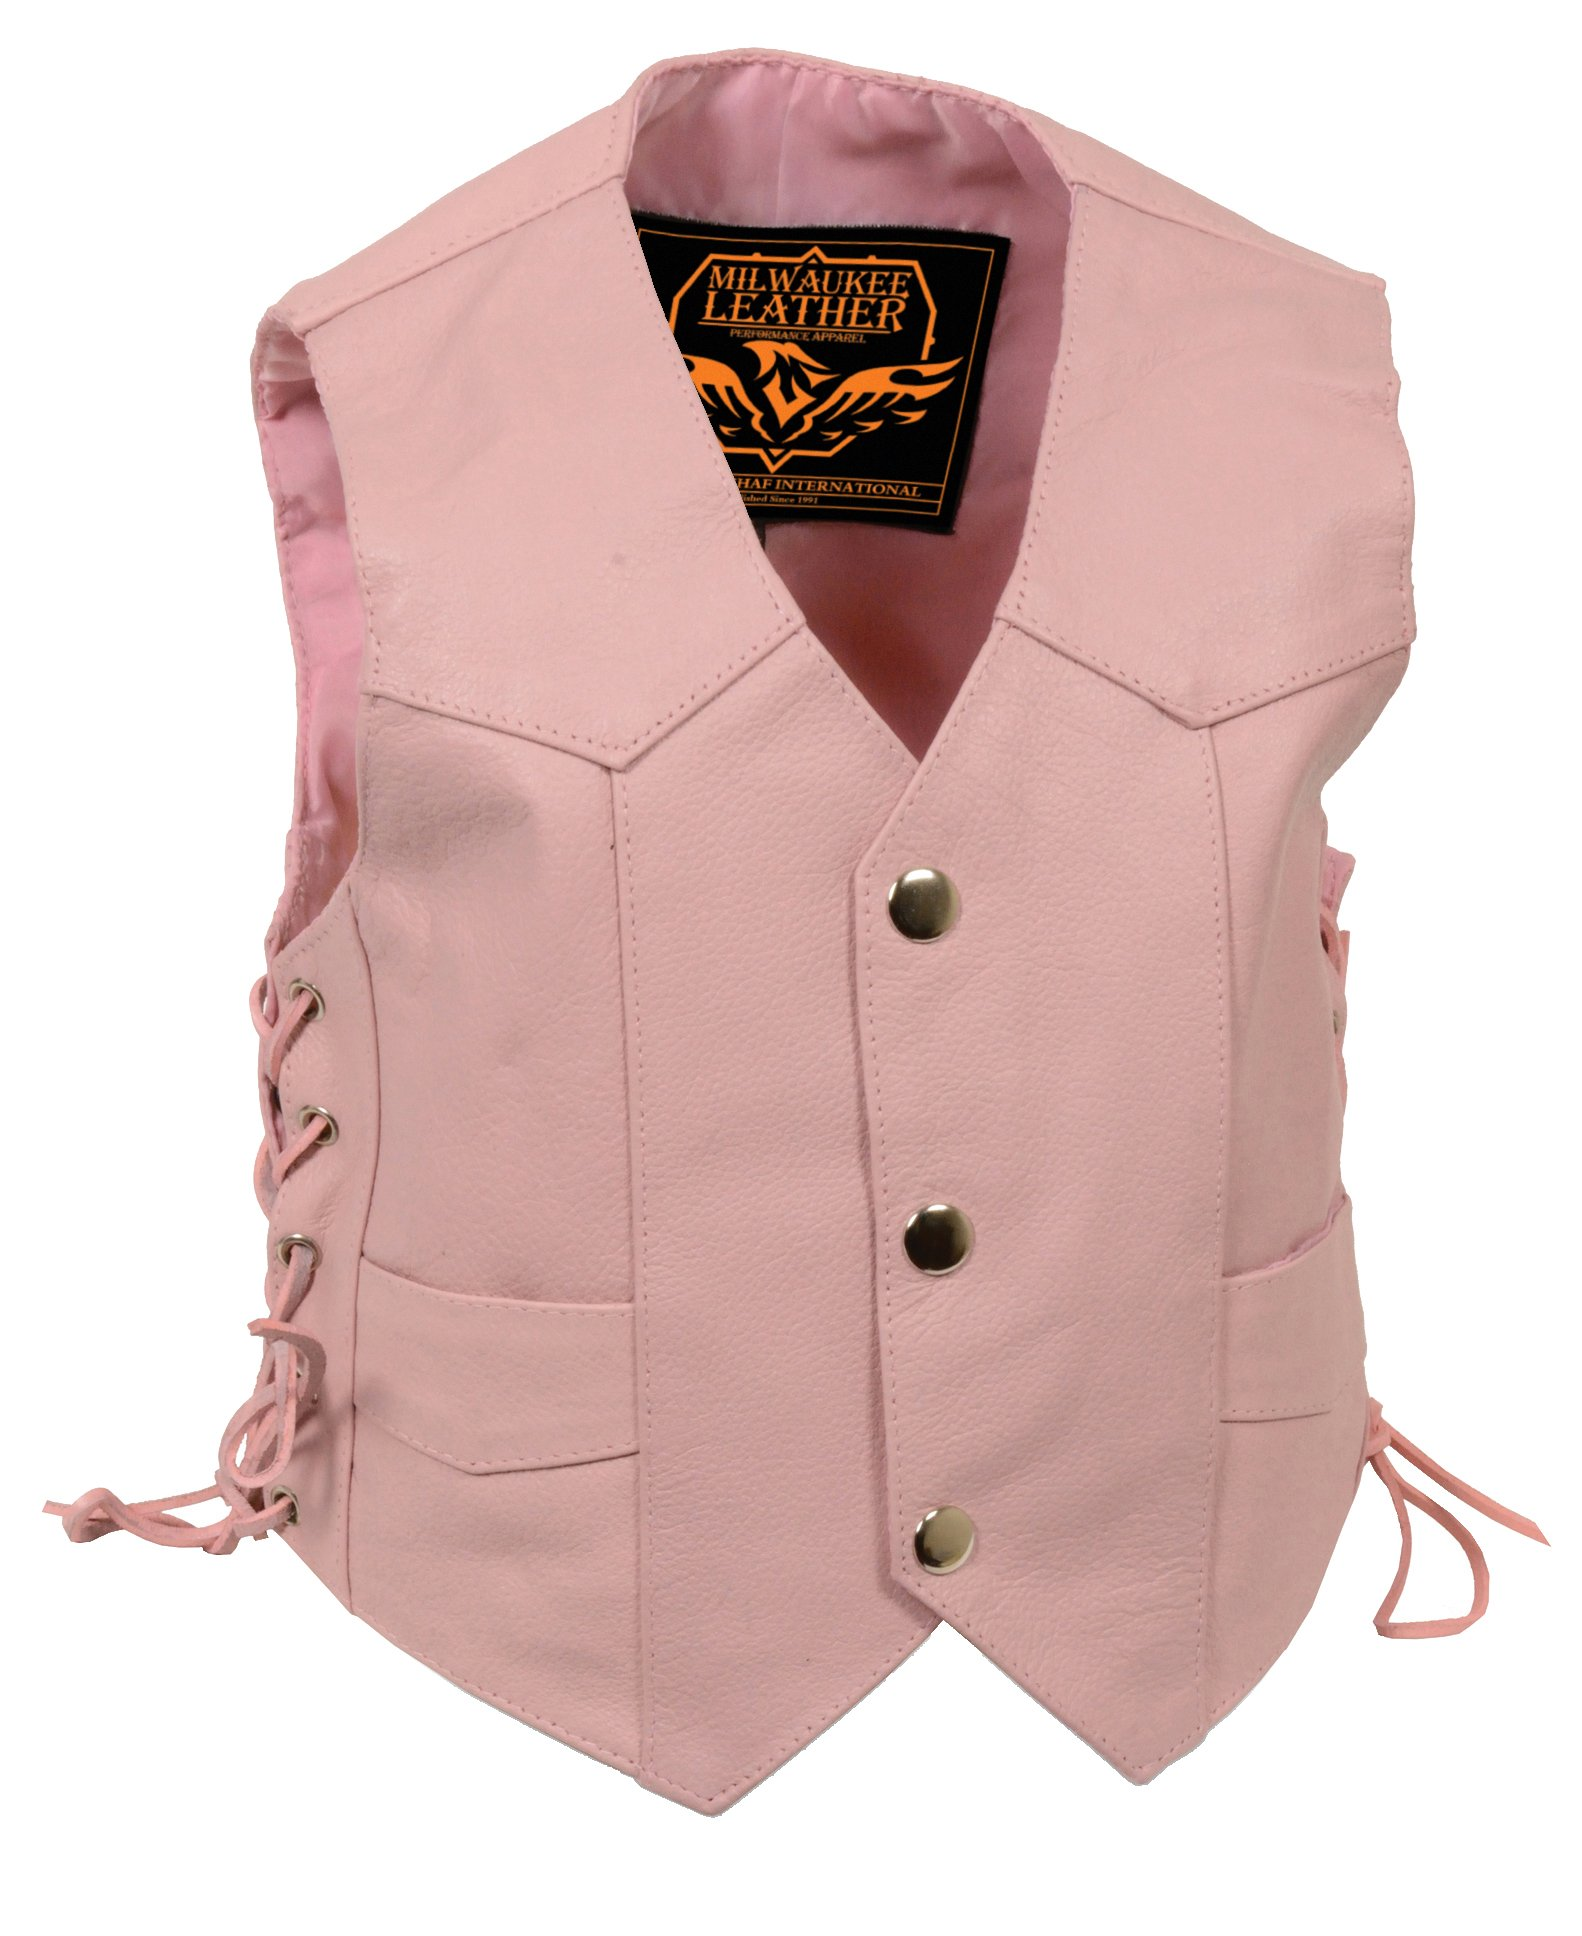 Milwaukee Leather Girls' Side Lace Vest (Pink, Large) (Kids)